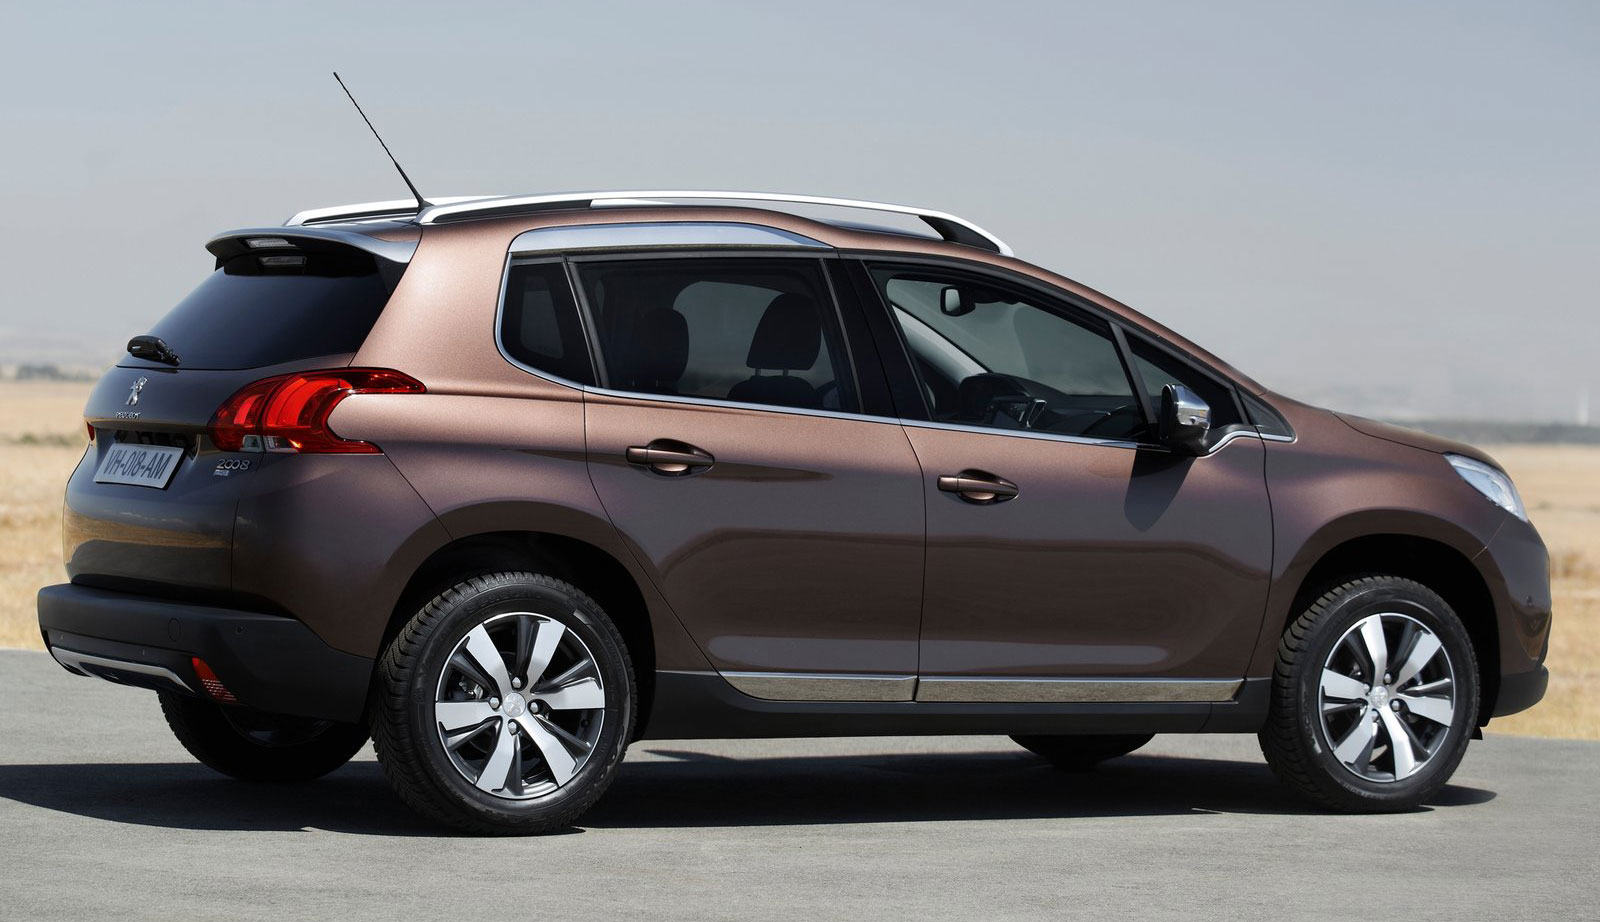 Peugeot 2008 Crossover Full Details And Gallery Image 155655